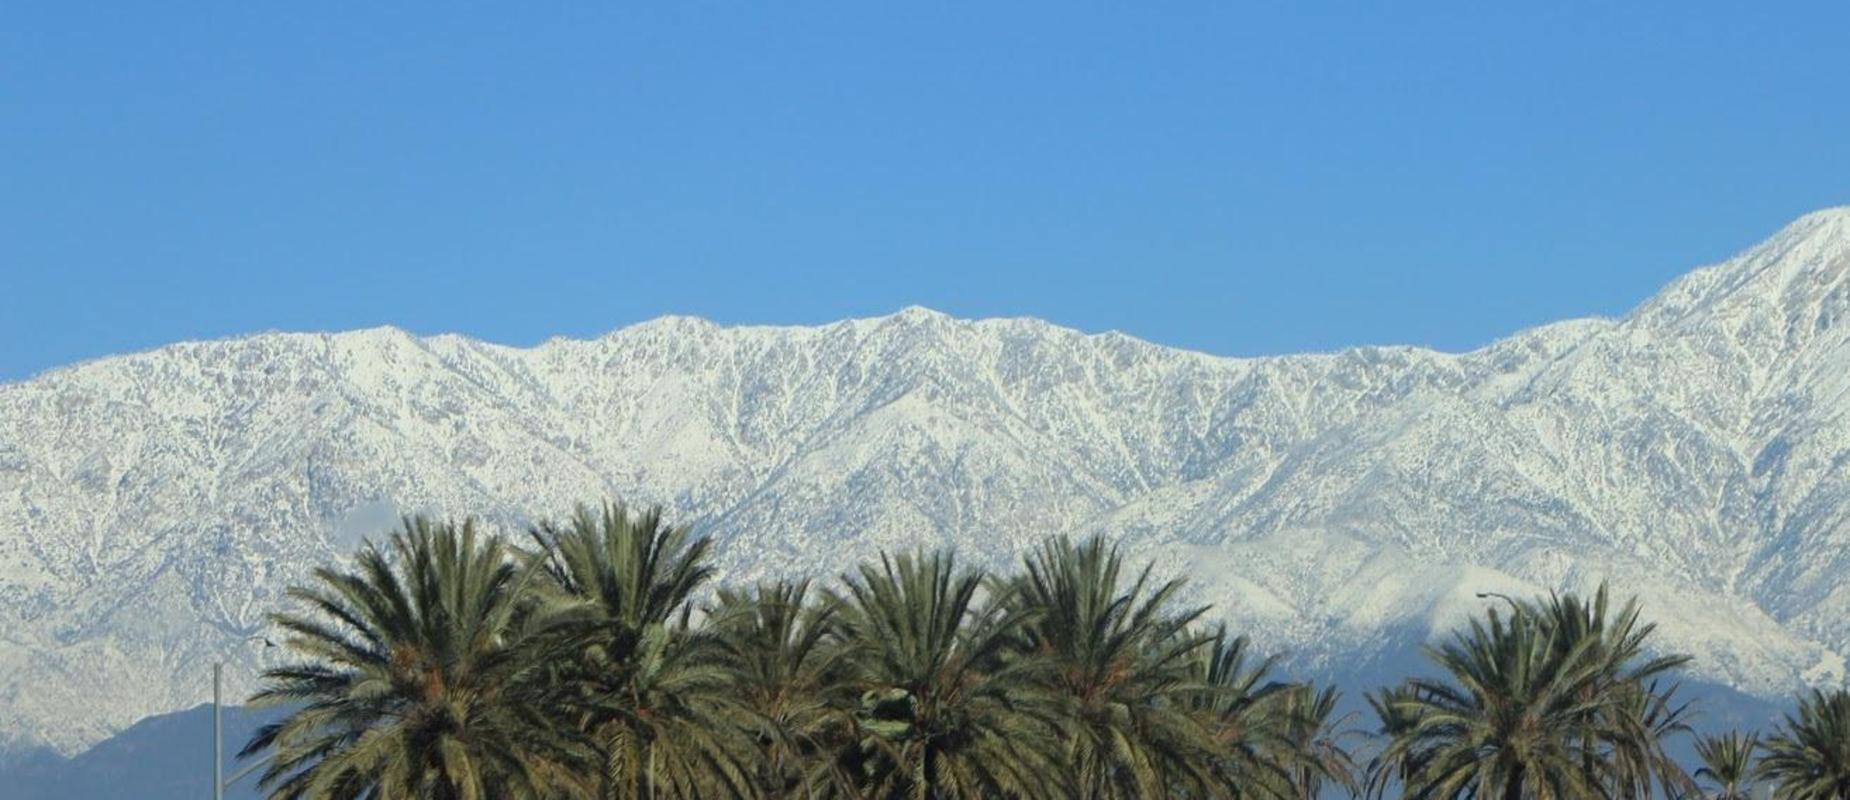 San Gabriel Valley Mountain Range